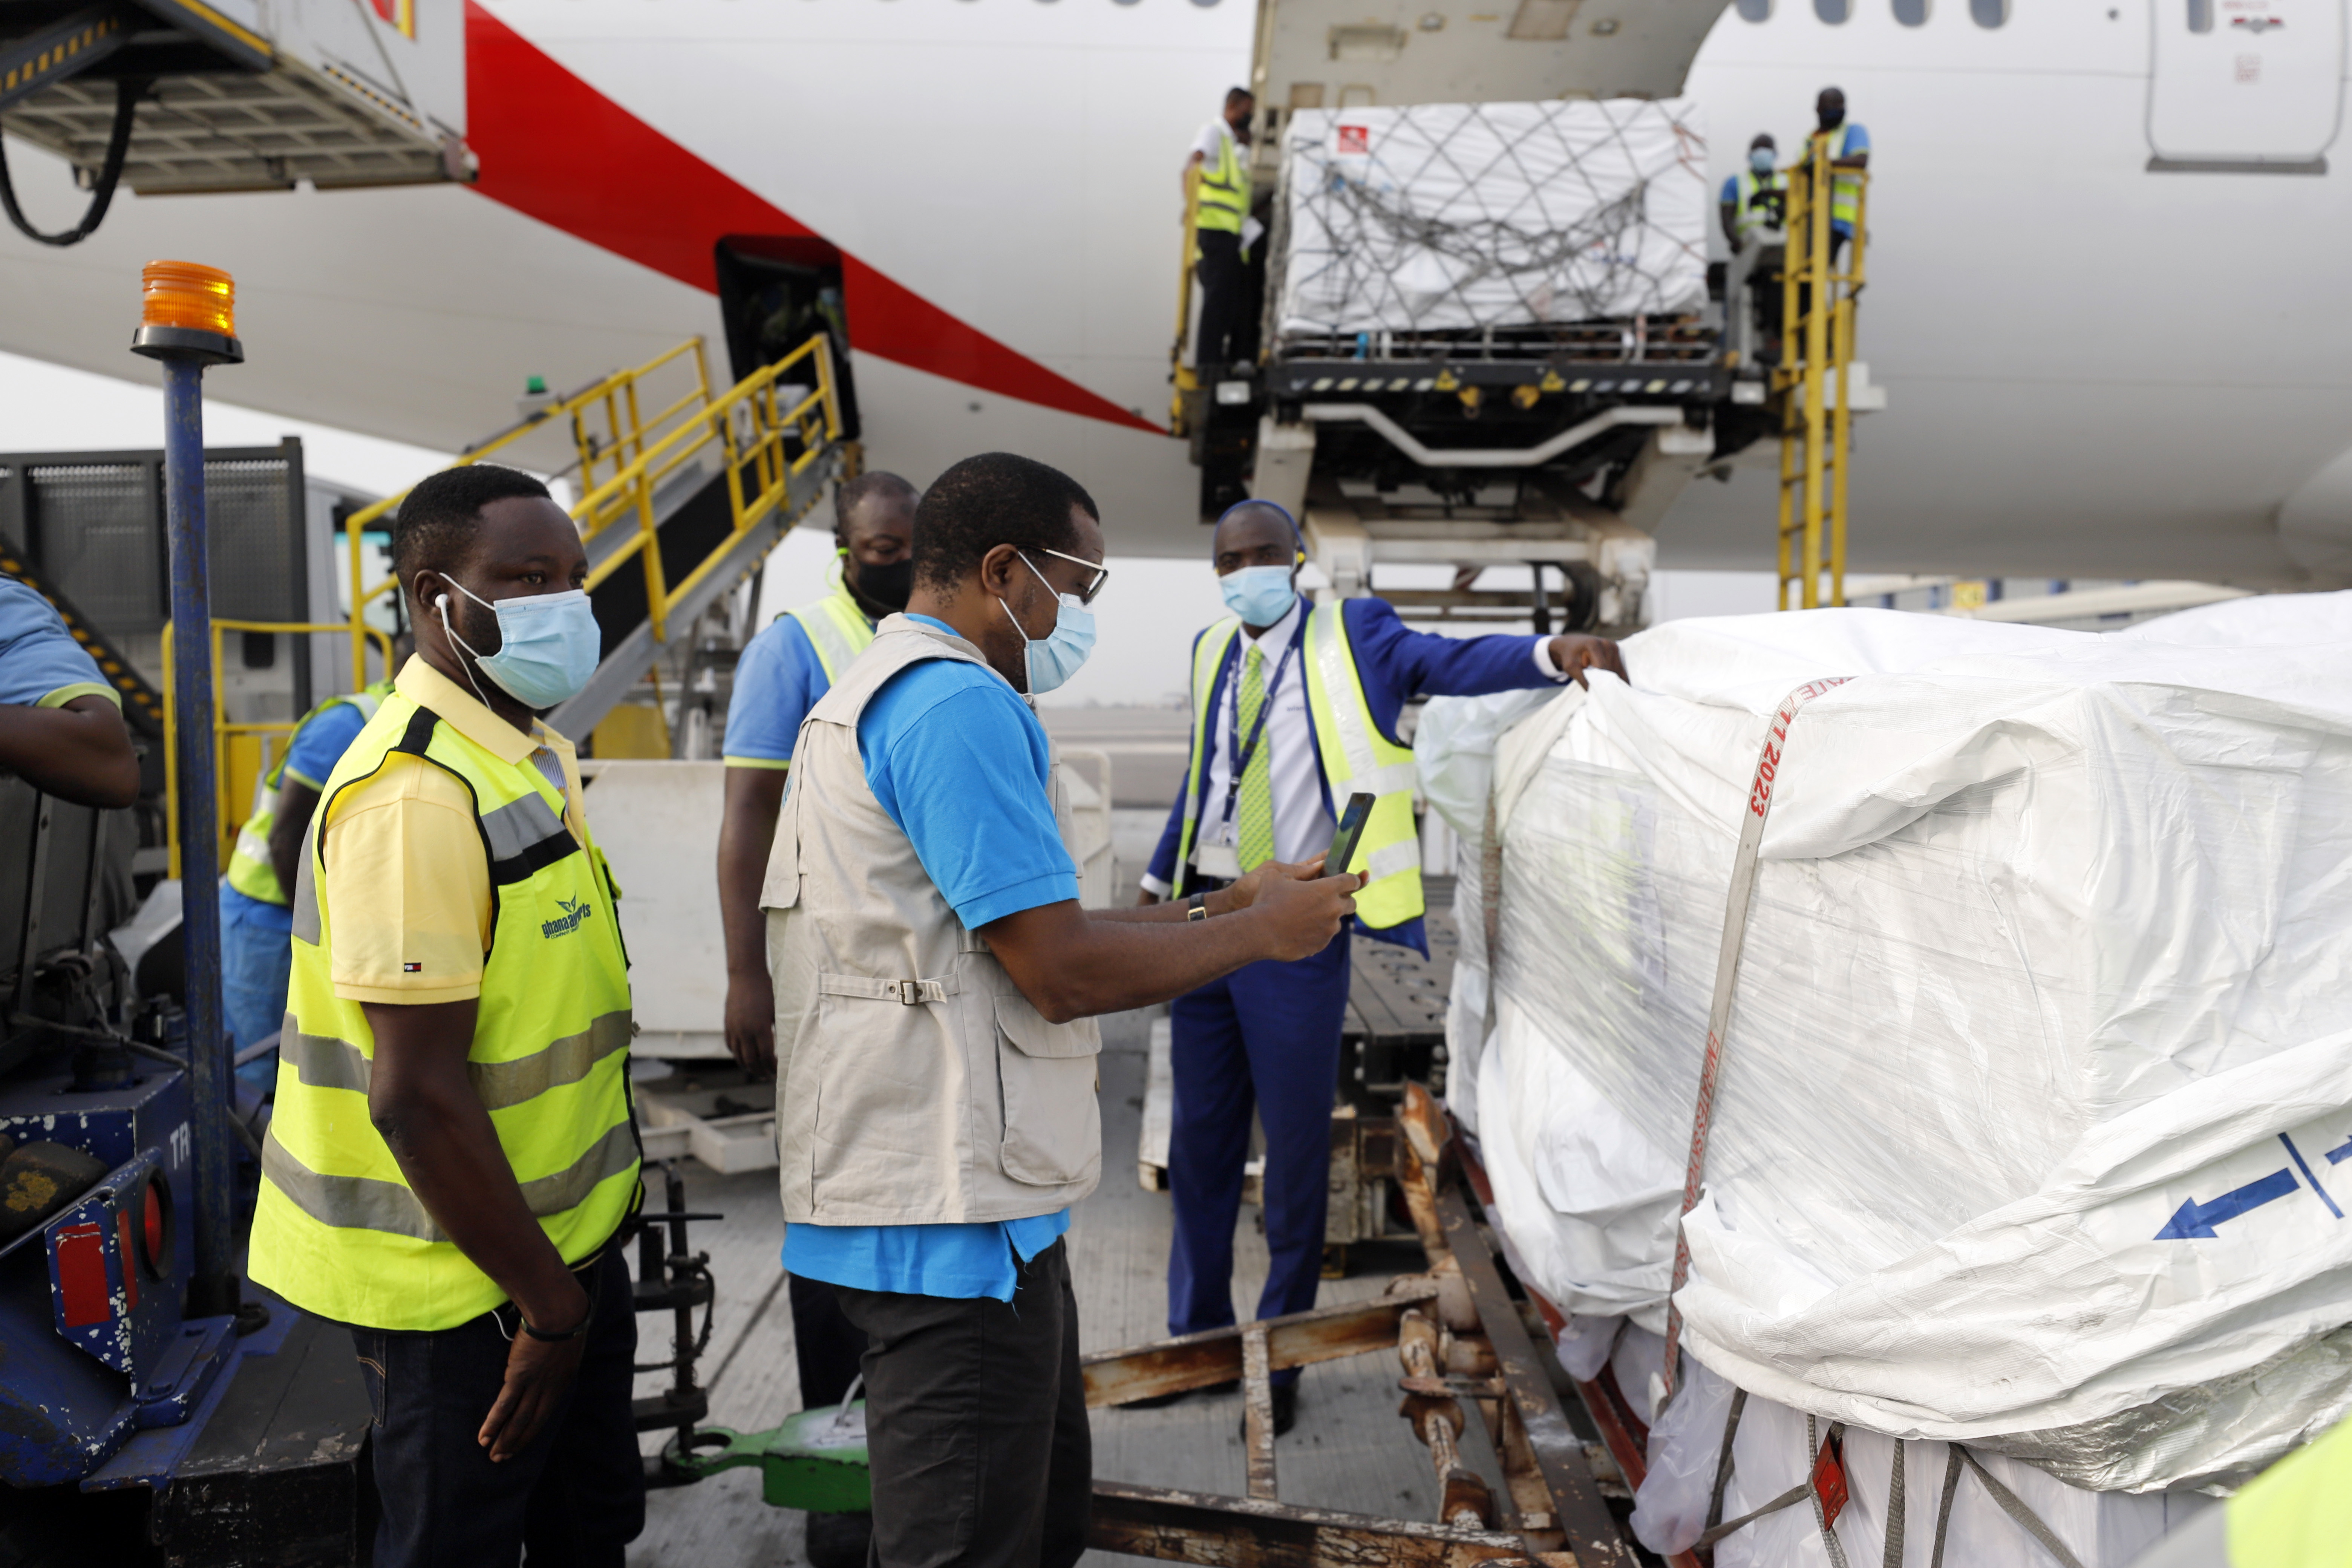 This photograph released by UNICEF Wednesday Feb. 24, 2021, shows the first shipment of COVID-19 vaccines distributed by the COVAX Facility arriving at the Kotoka International Airport in Accra, Ghana.